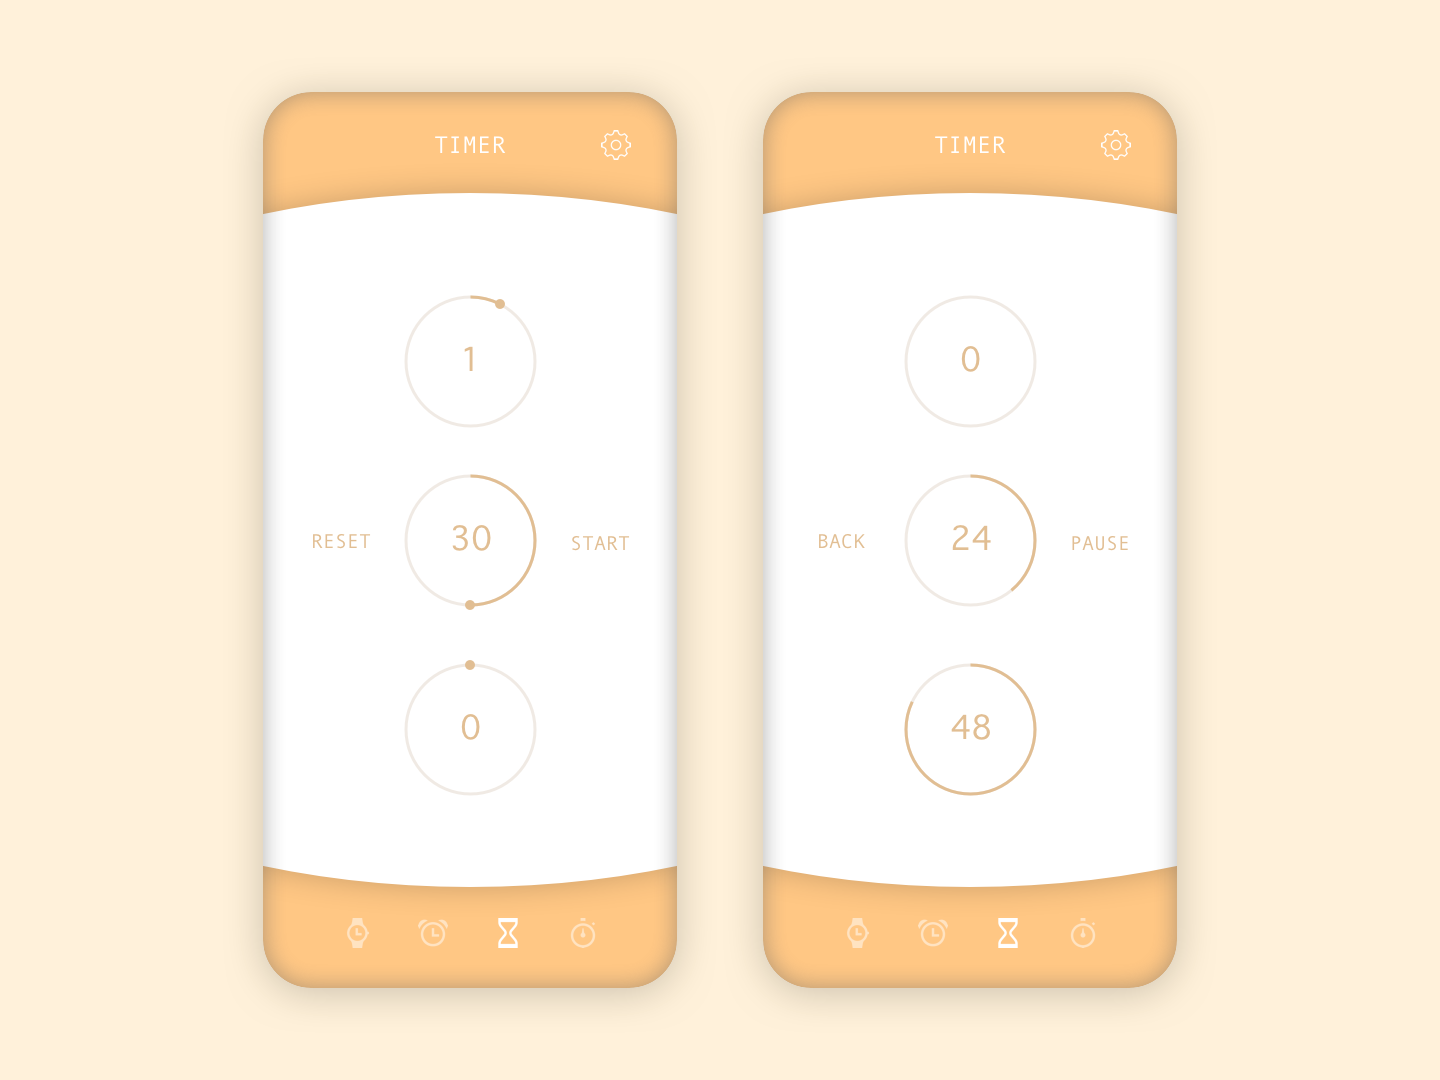 Daily UI - 014 - Countdown Timer sketch appdesign app userinterfacedesign userinterface uidesign design ui dailyui014 dailyui